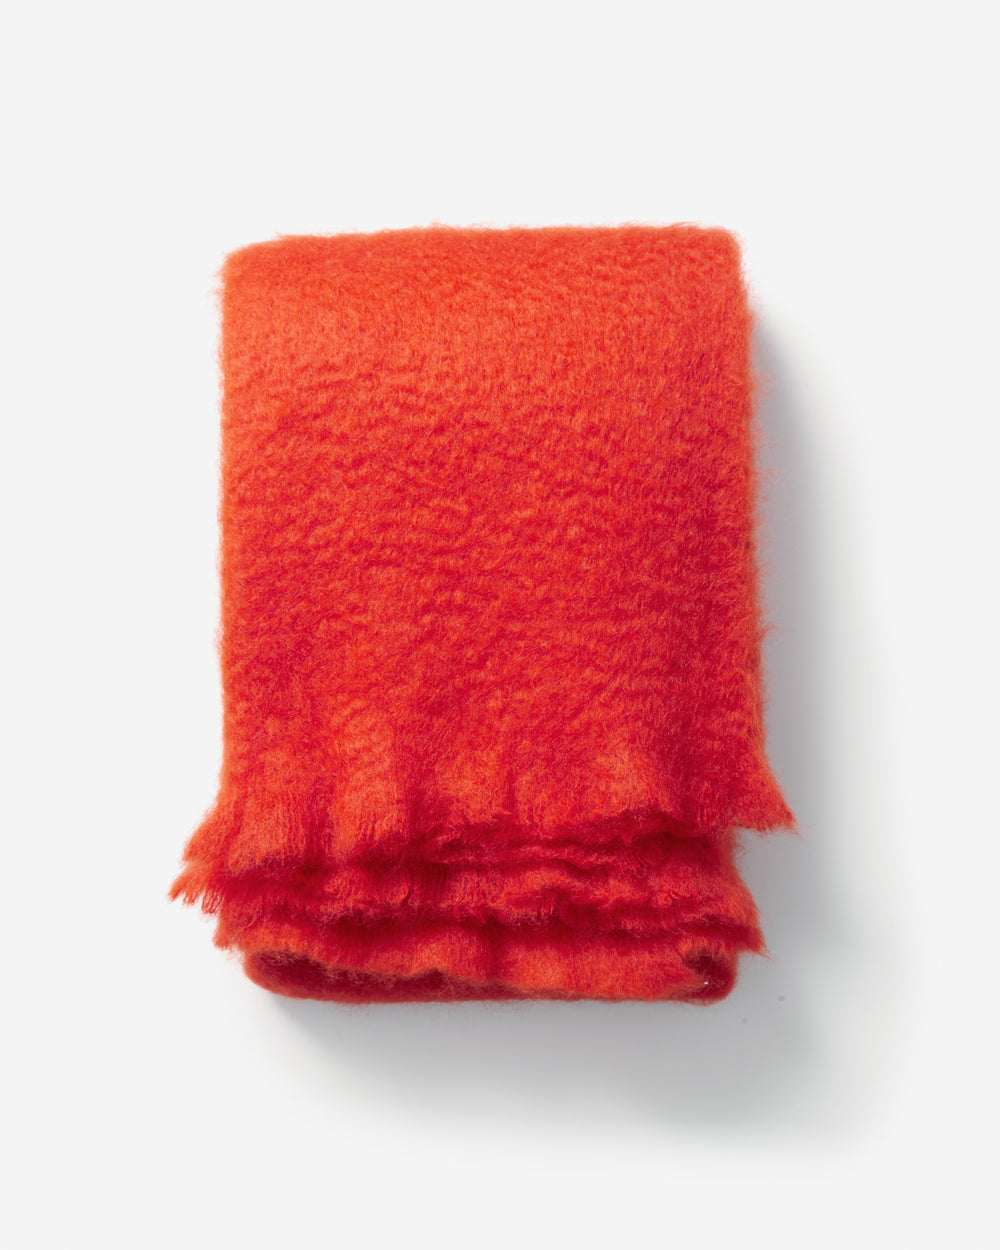 Exquisite Mohair & Wool Blanket